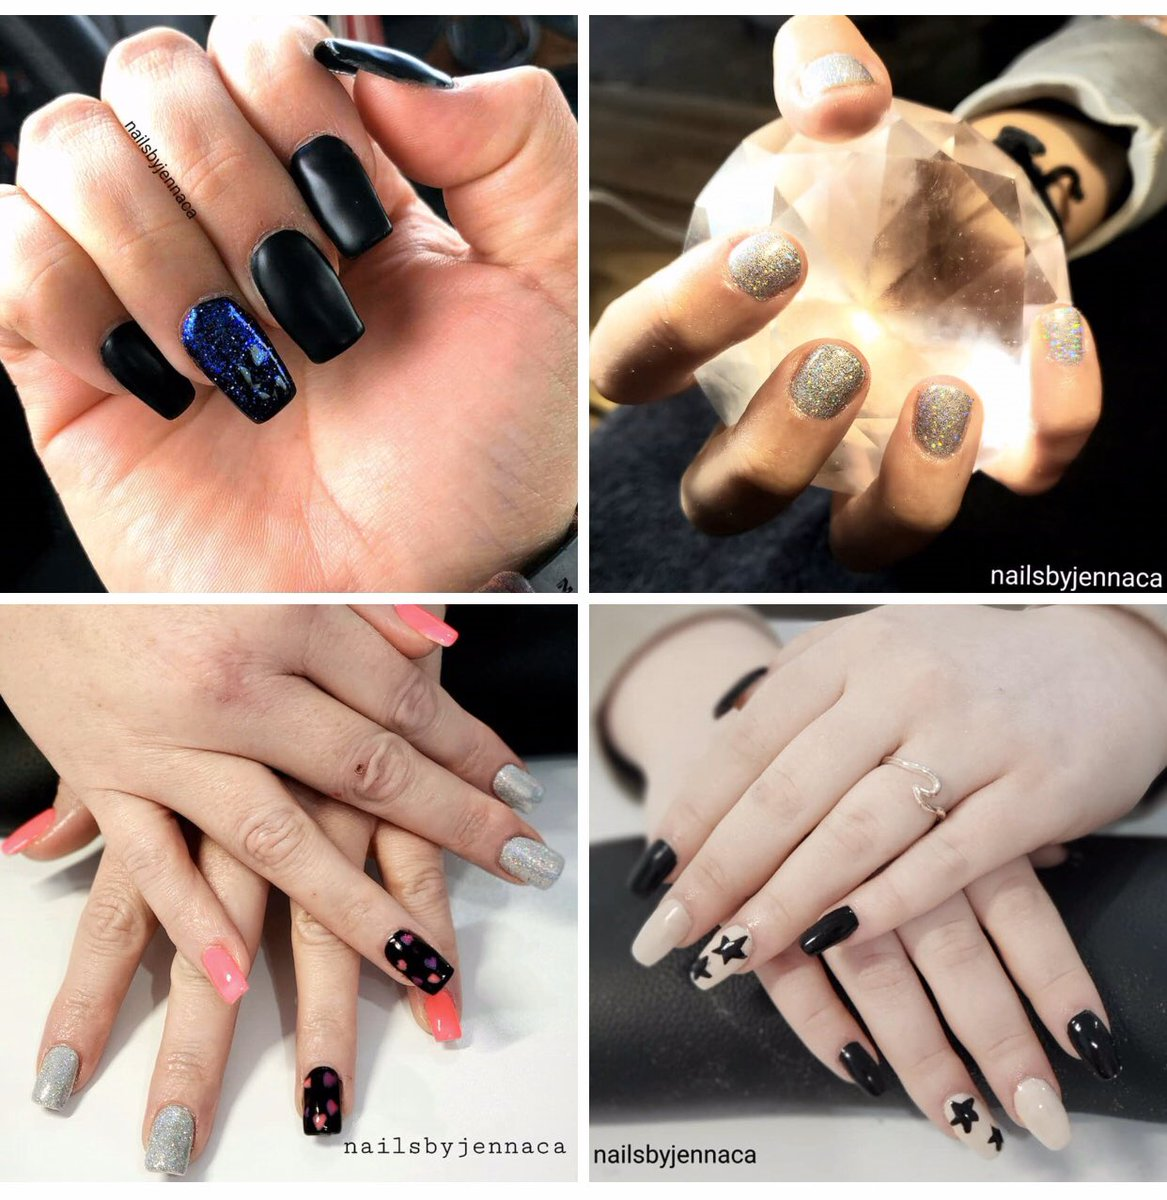 Jennaca still has some openings for nails this month! She is running an awesome 30% off special through February too!  Grab your spot while they are left!  406-272-0070 BOOK Online 24/7https://go.booker.com/Studio406salon  #Salon #Studio406salon #406Hair #Billings  #Dayspapic.twitter.com/gBEmbxuEdt